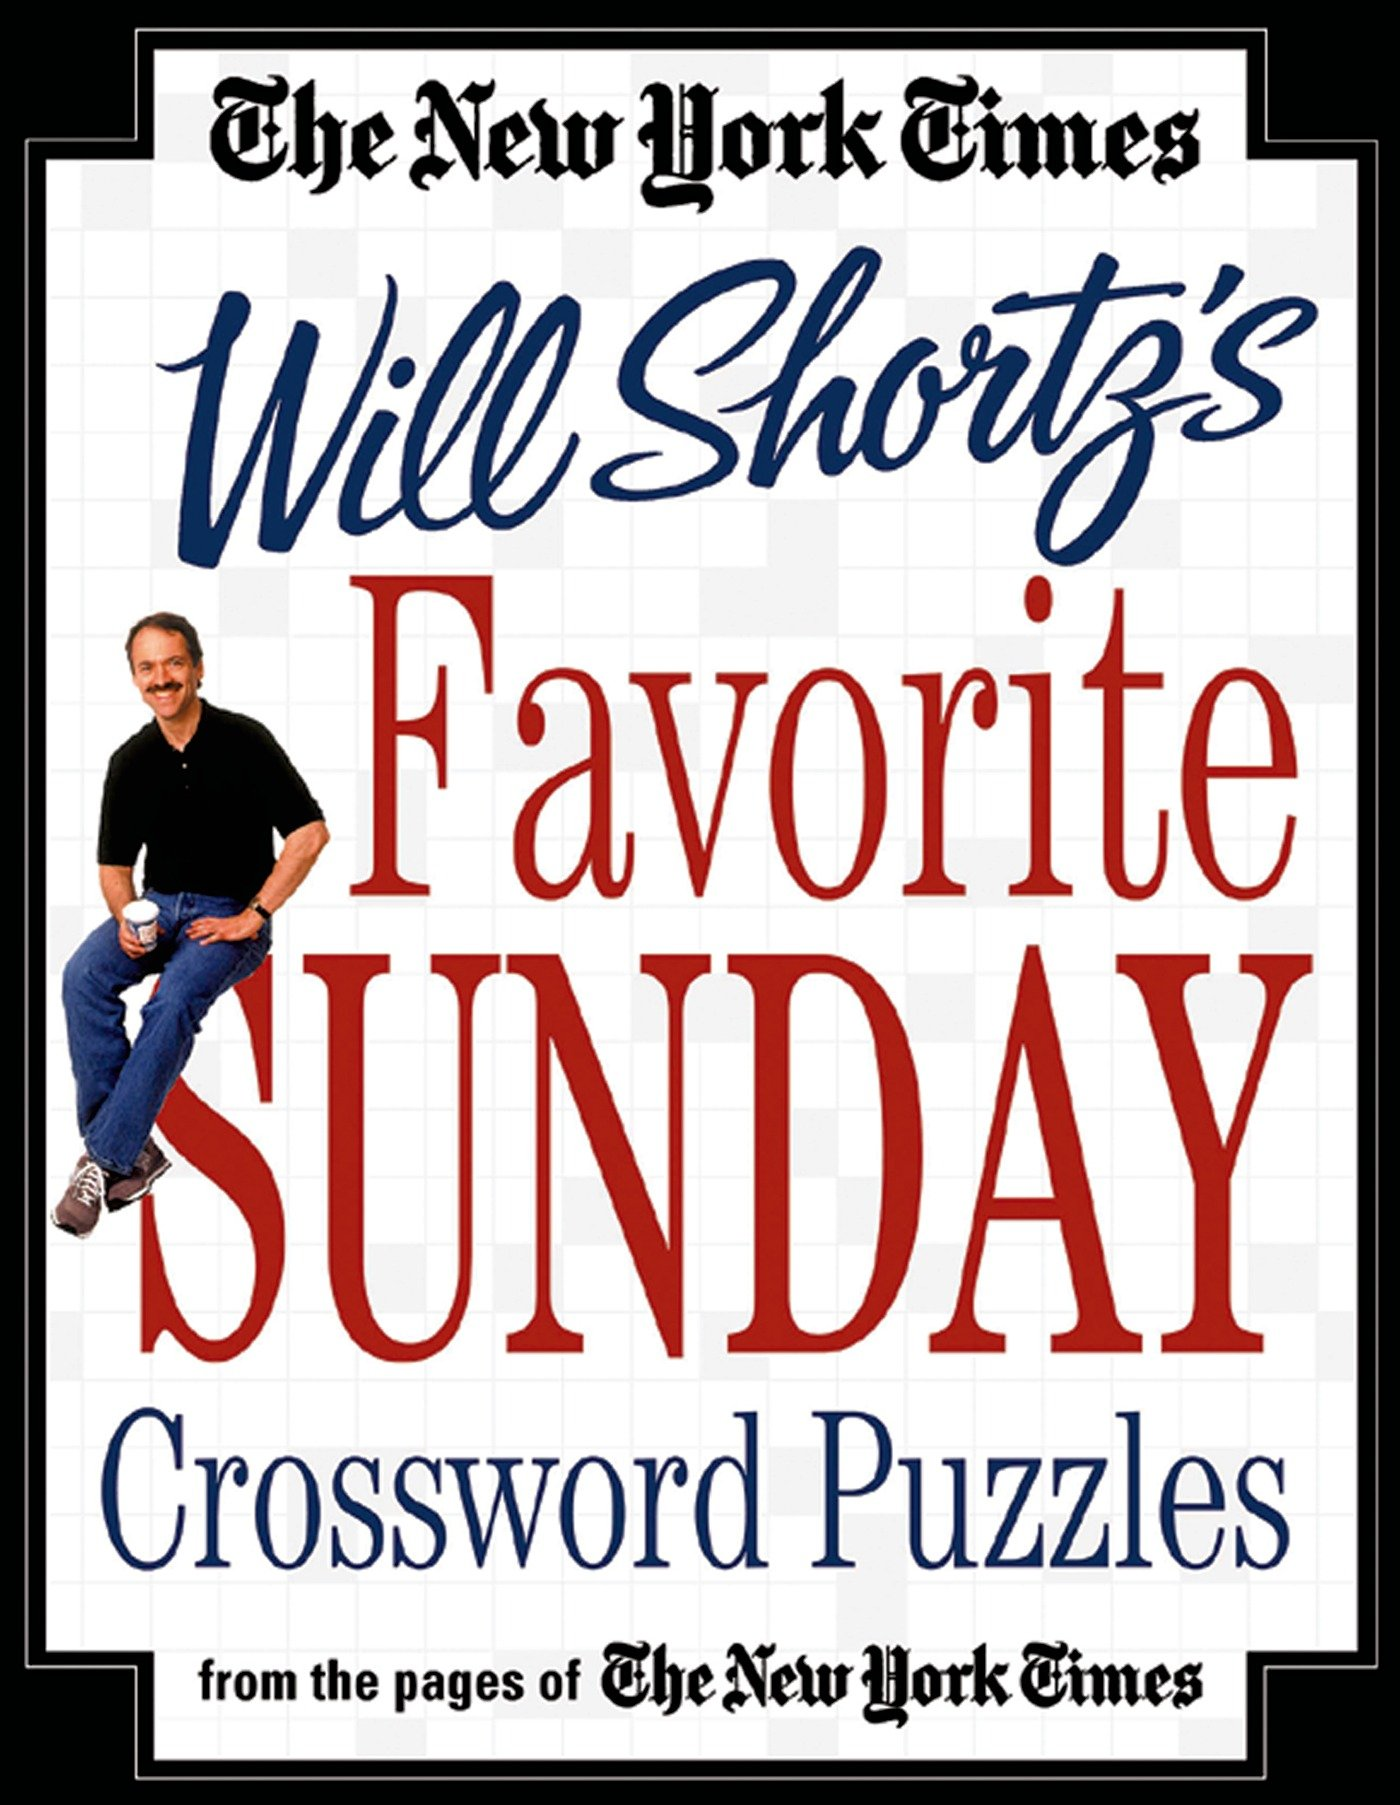 The new york times will shortzs favorite sunday crossword puzzles the new york times will shortzs favorite sunday crossword puzzles from the pages of the new york times the new york times will shortz 9780312324889 biocorpaavc